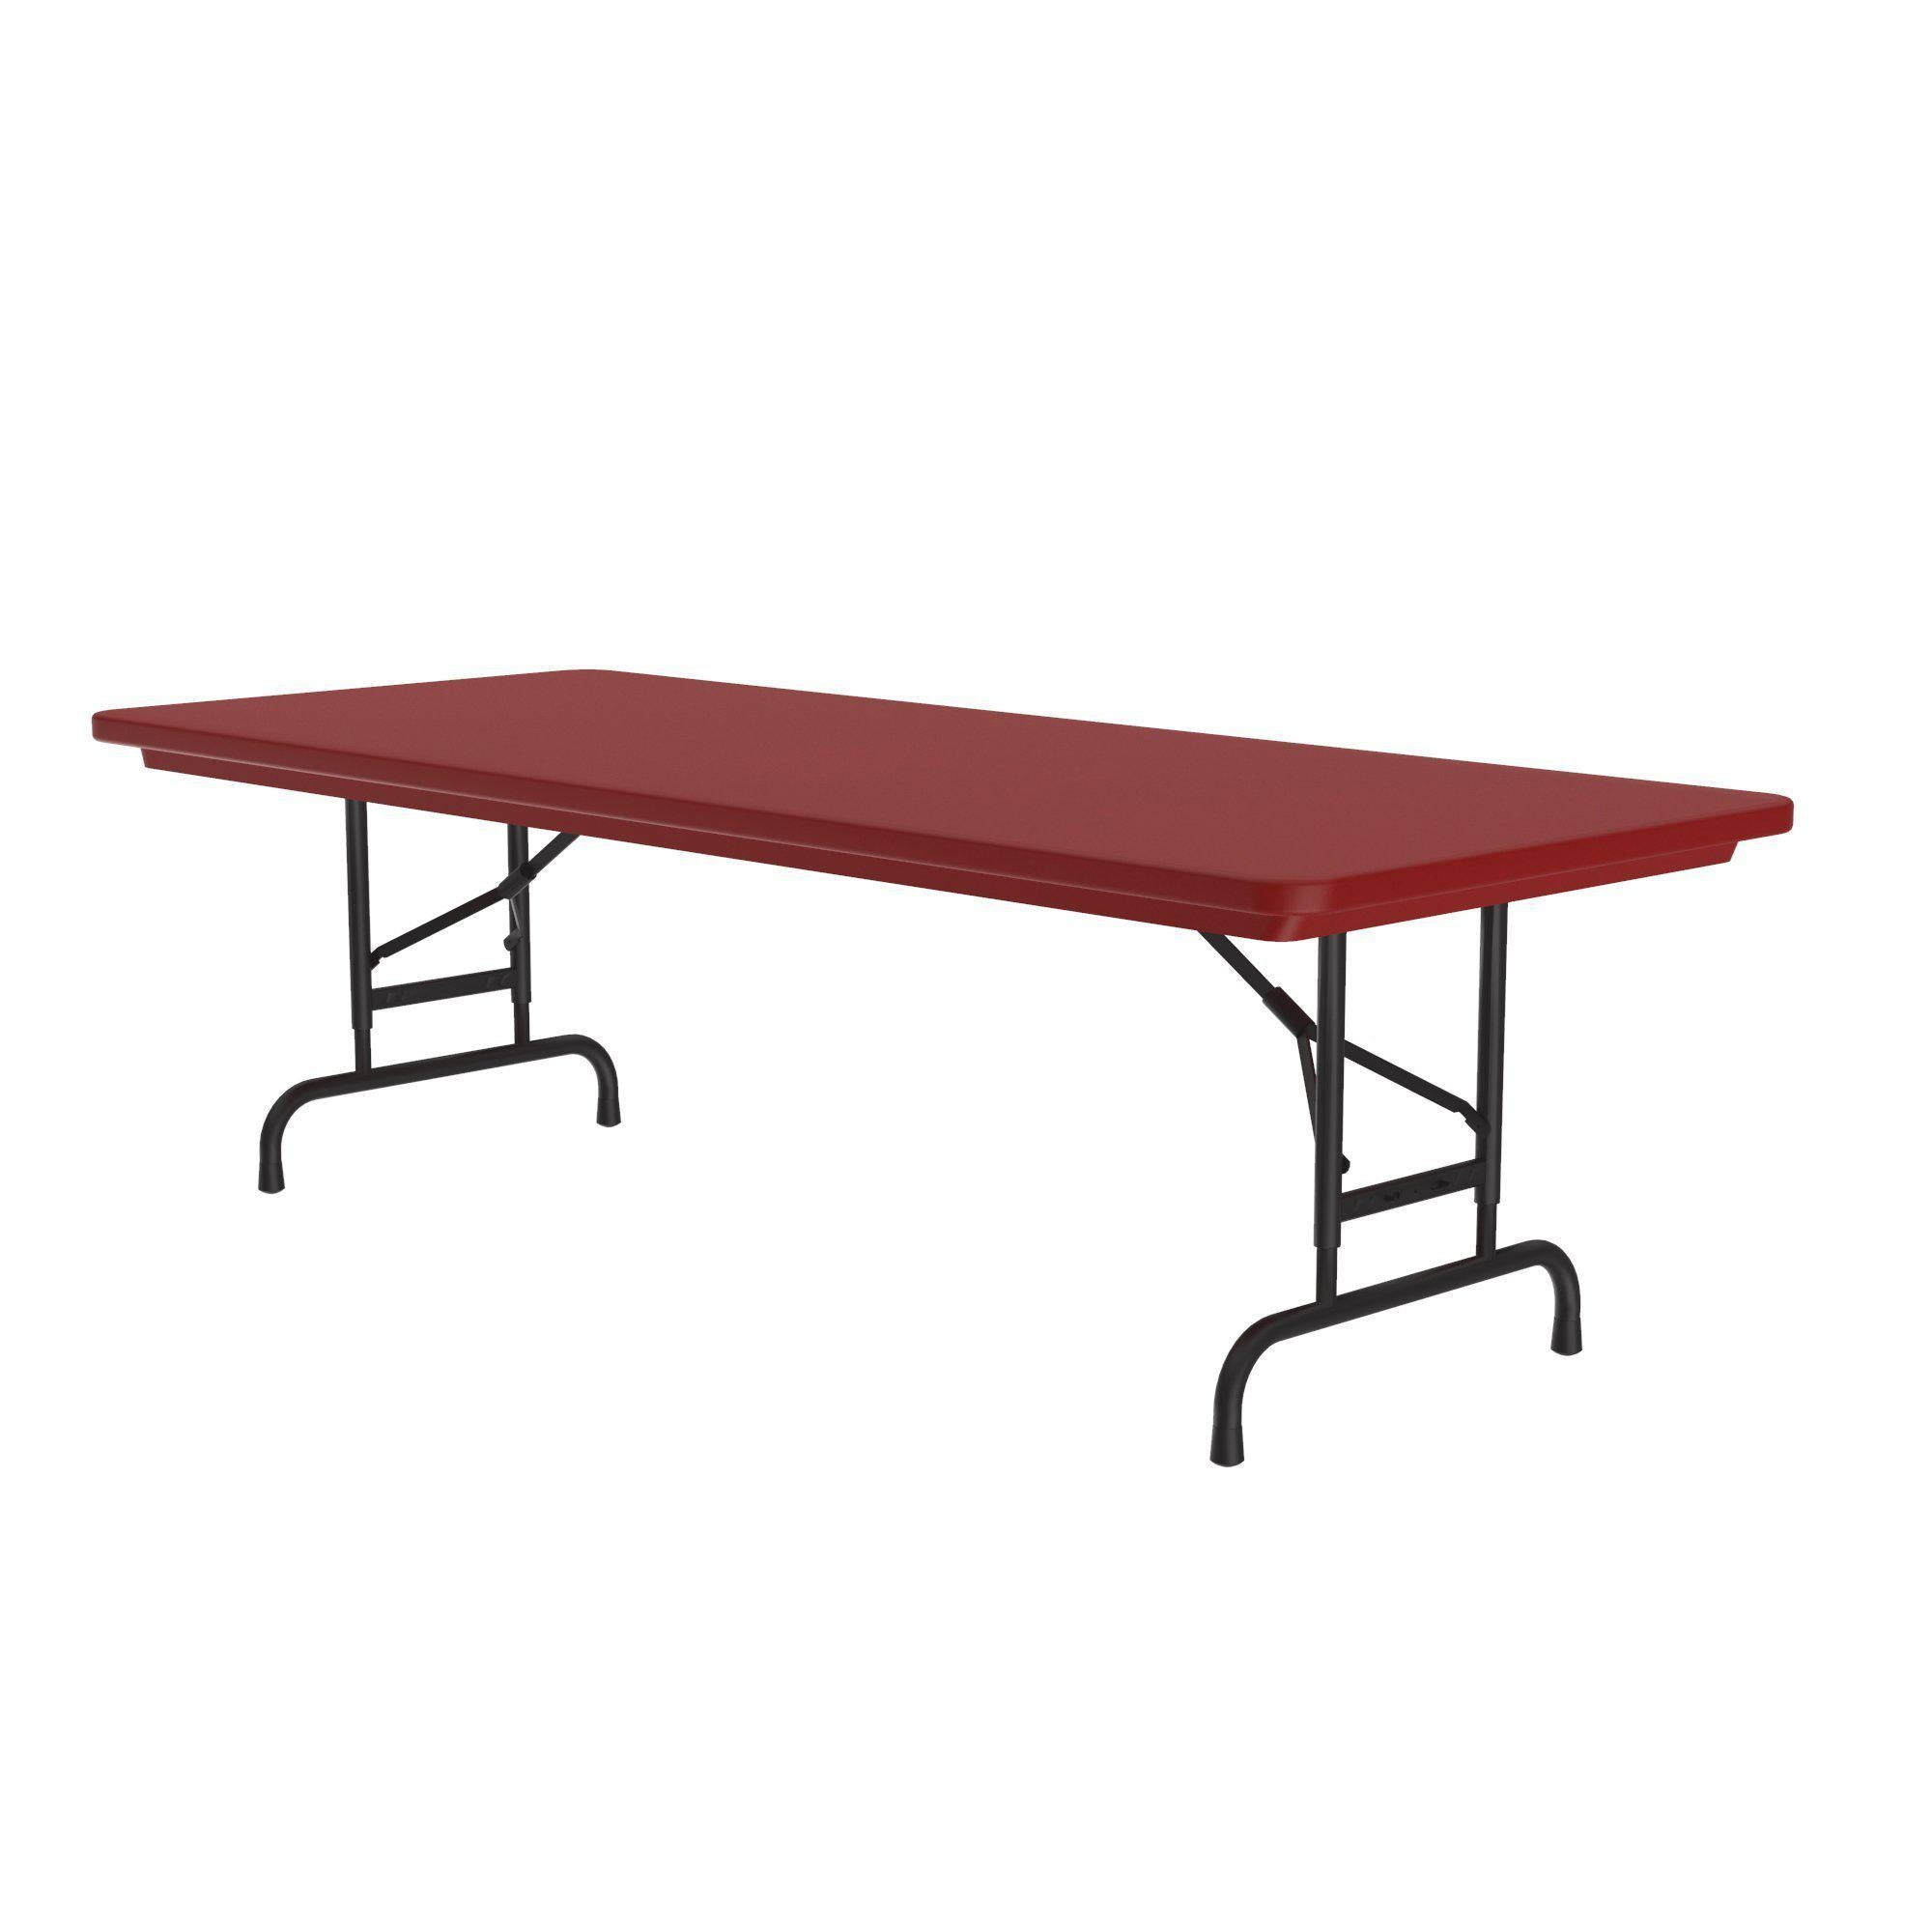 Heavy Duty Commercial Use Blow Molded Folding Table, Primary Colors, Adjustable Height, 30 x 72